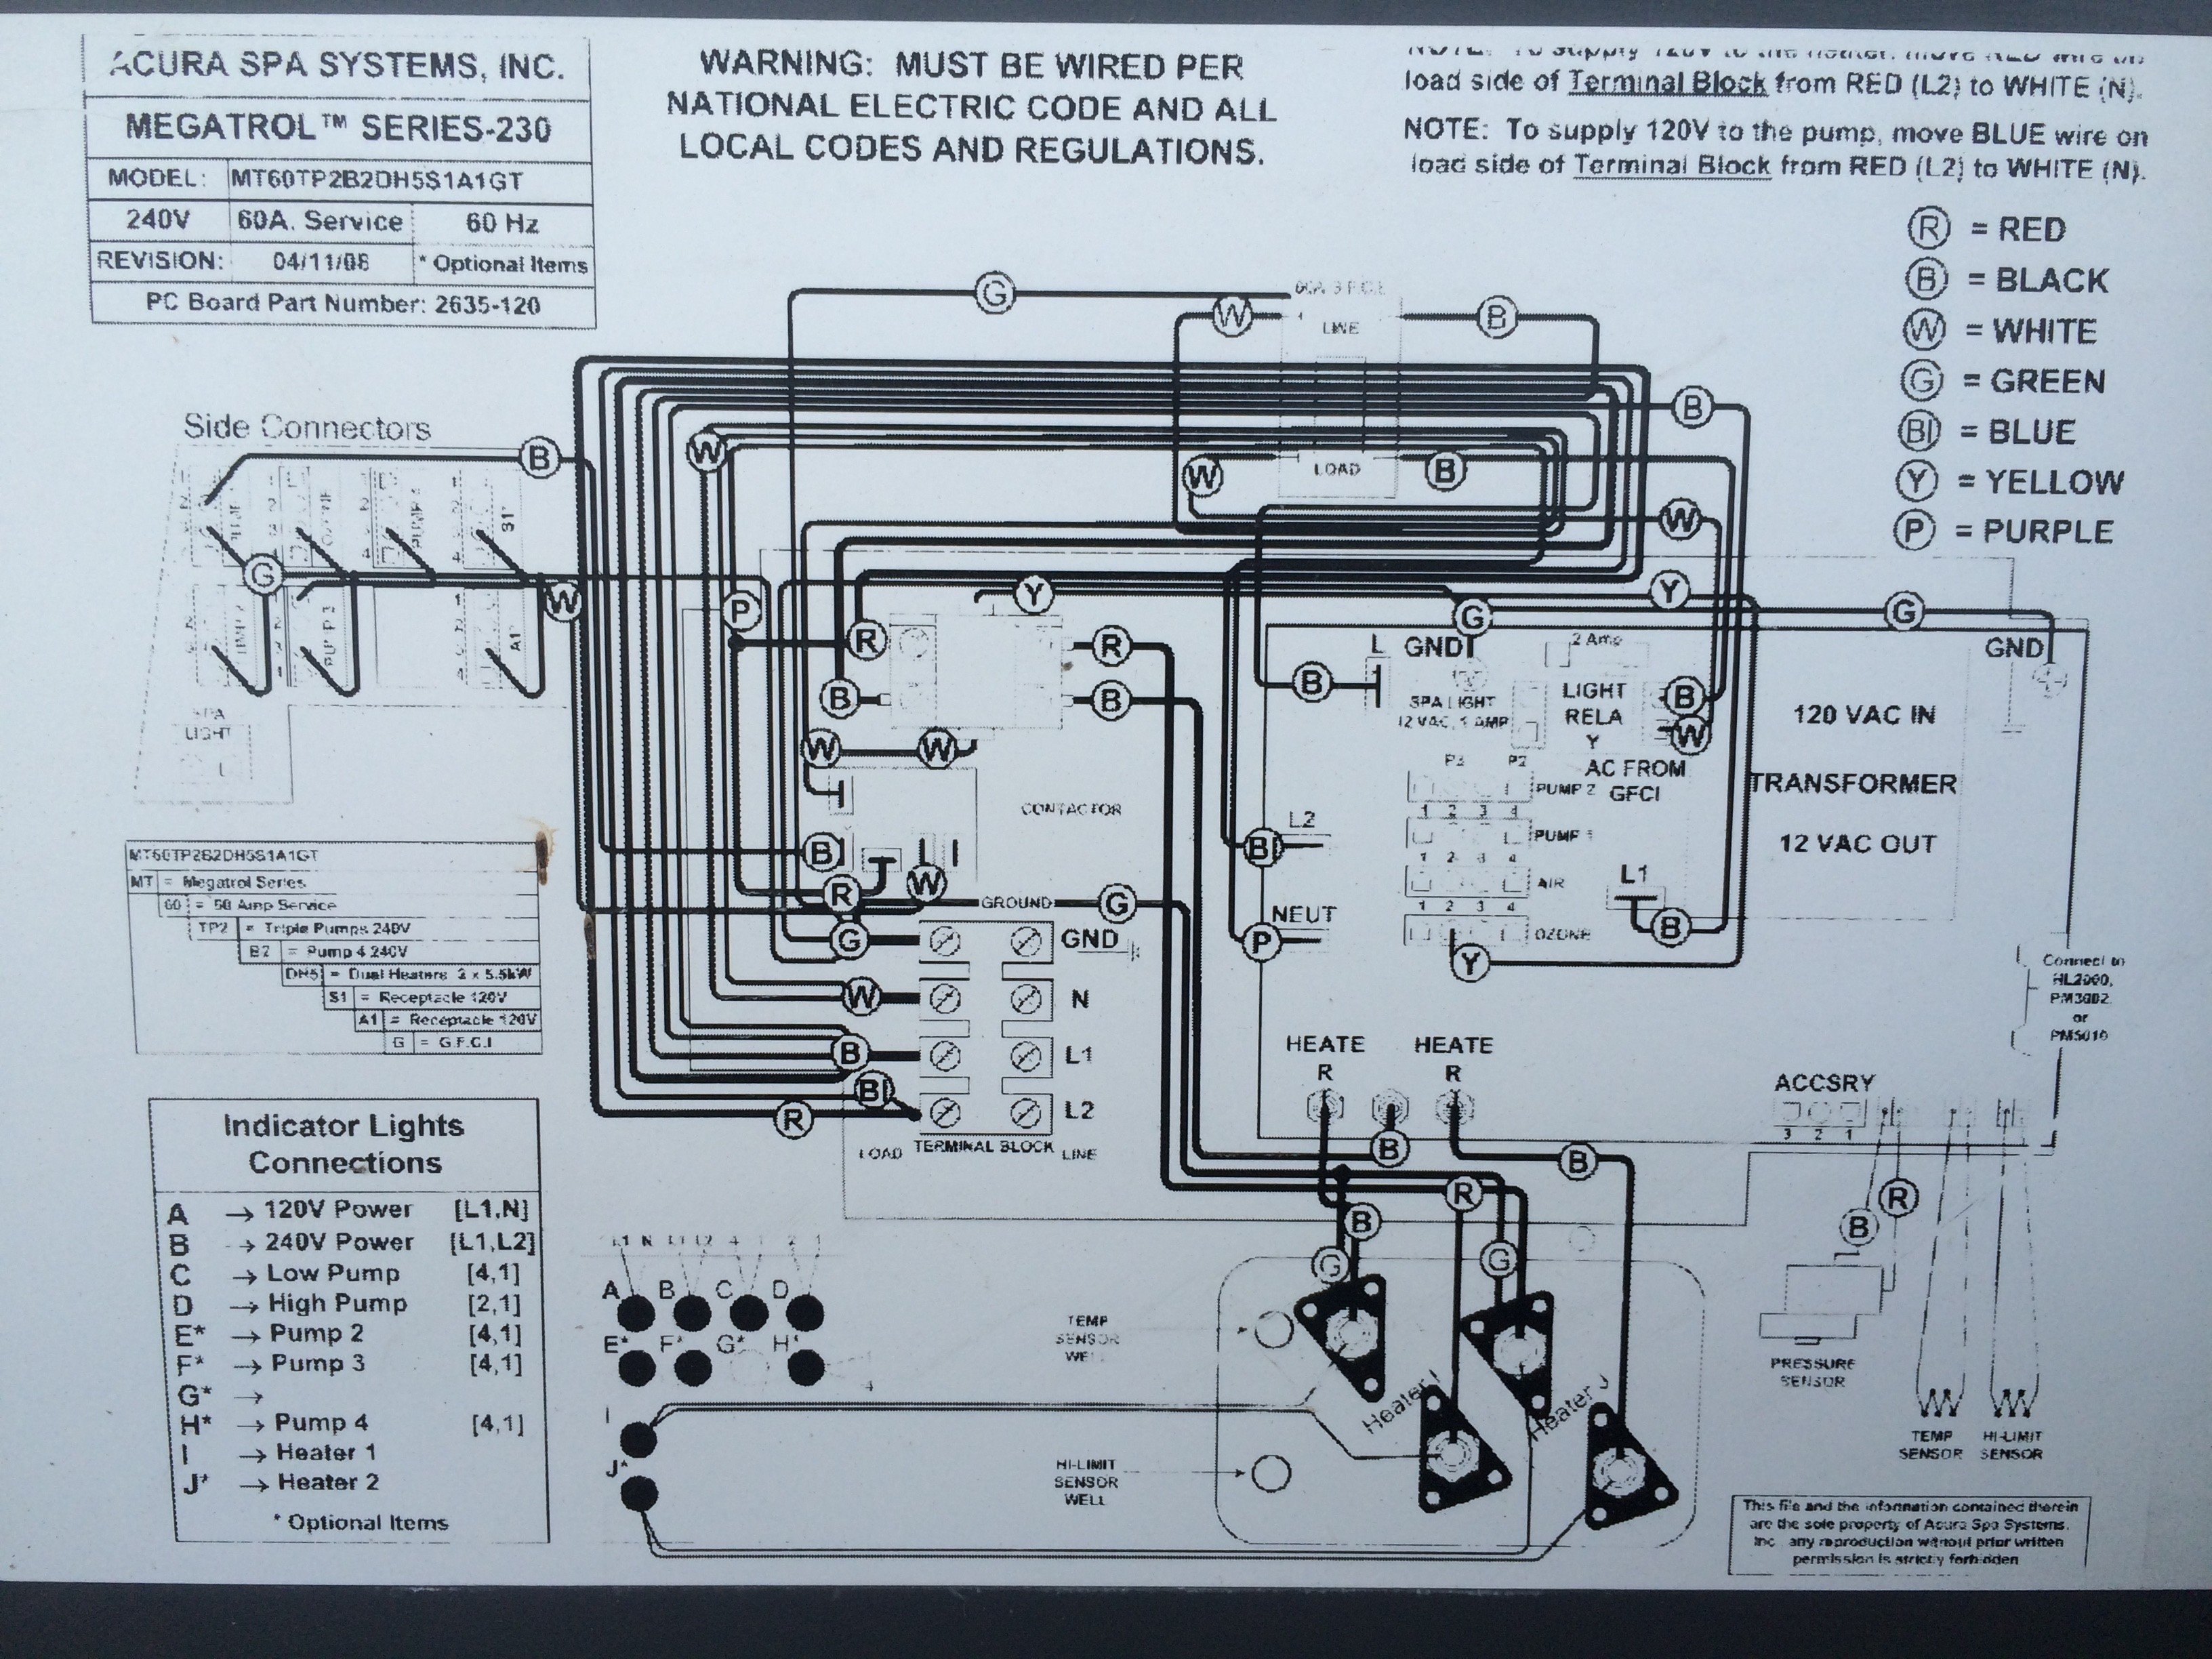 arctic spa heater wiring diagram hampton bay ceiling fan switch schematics diagrams hunter pack get free image about